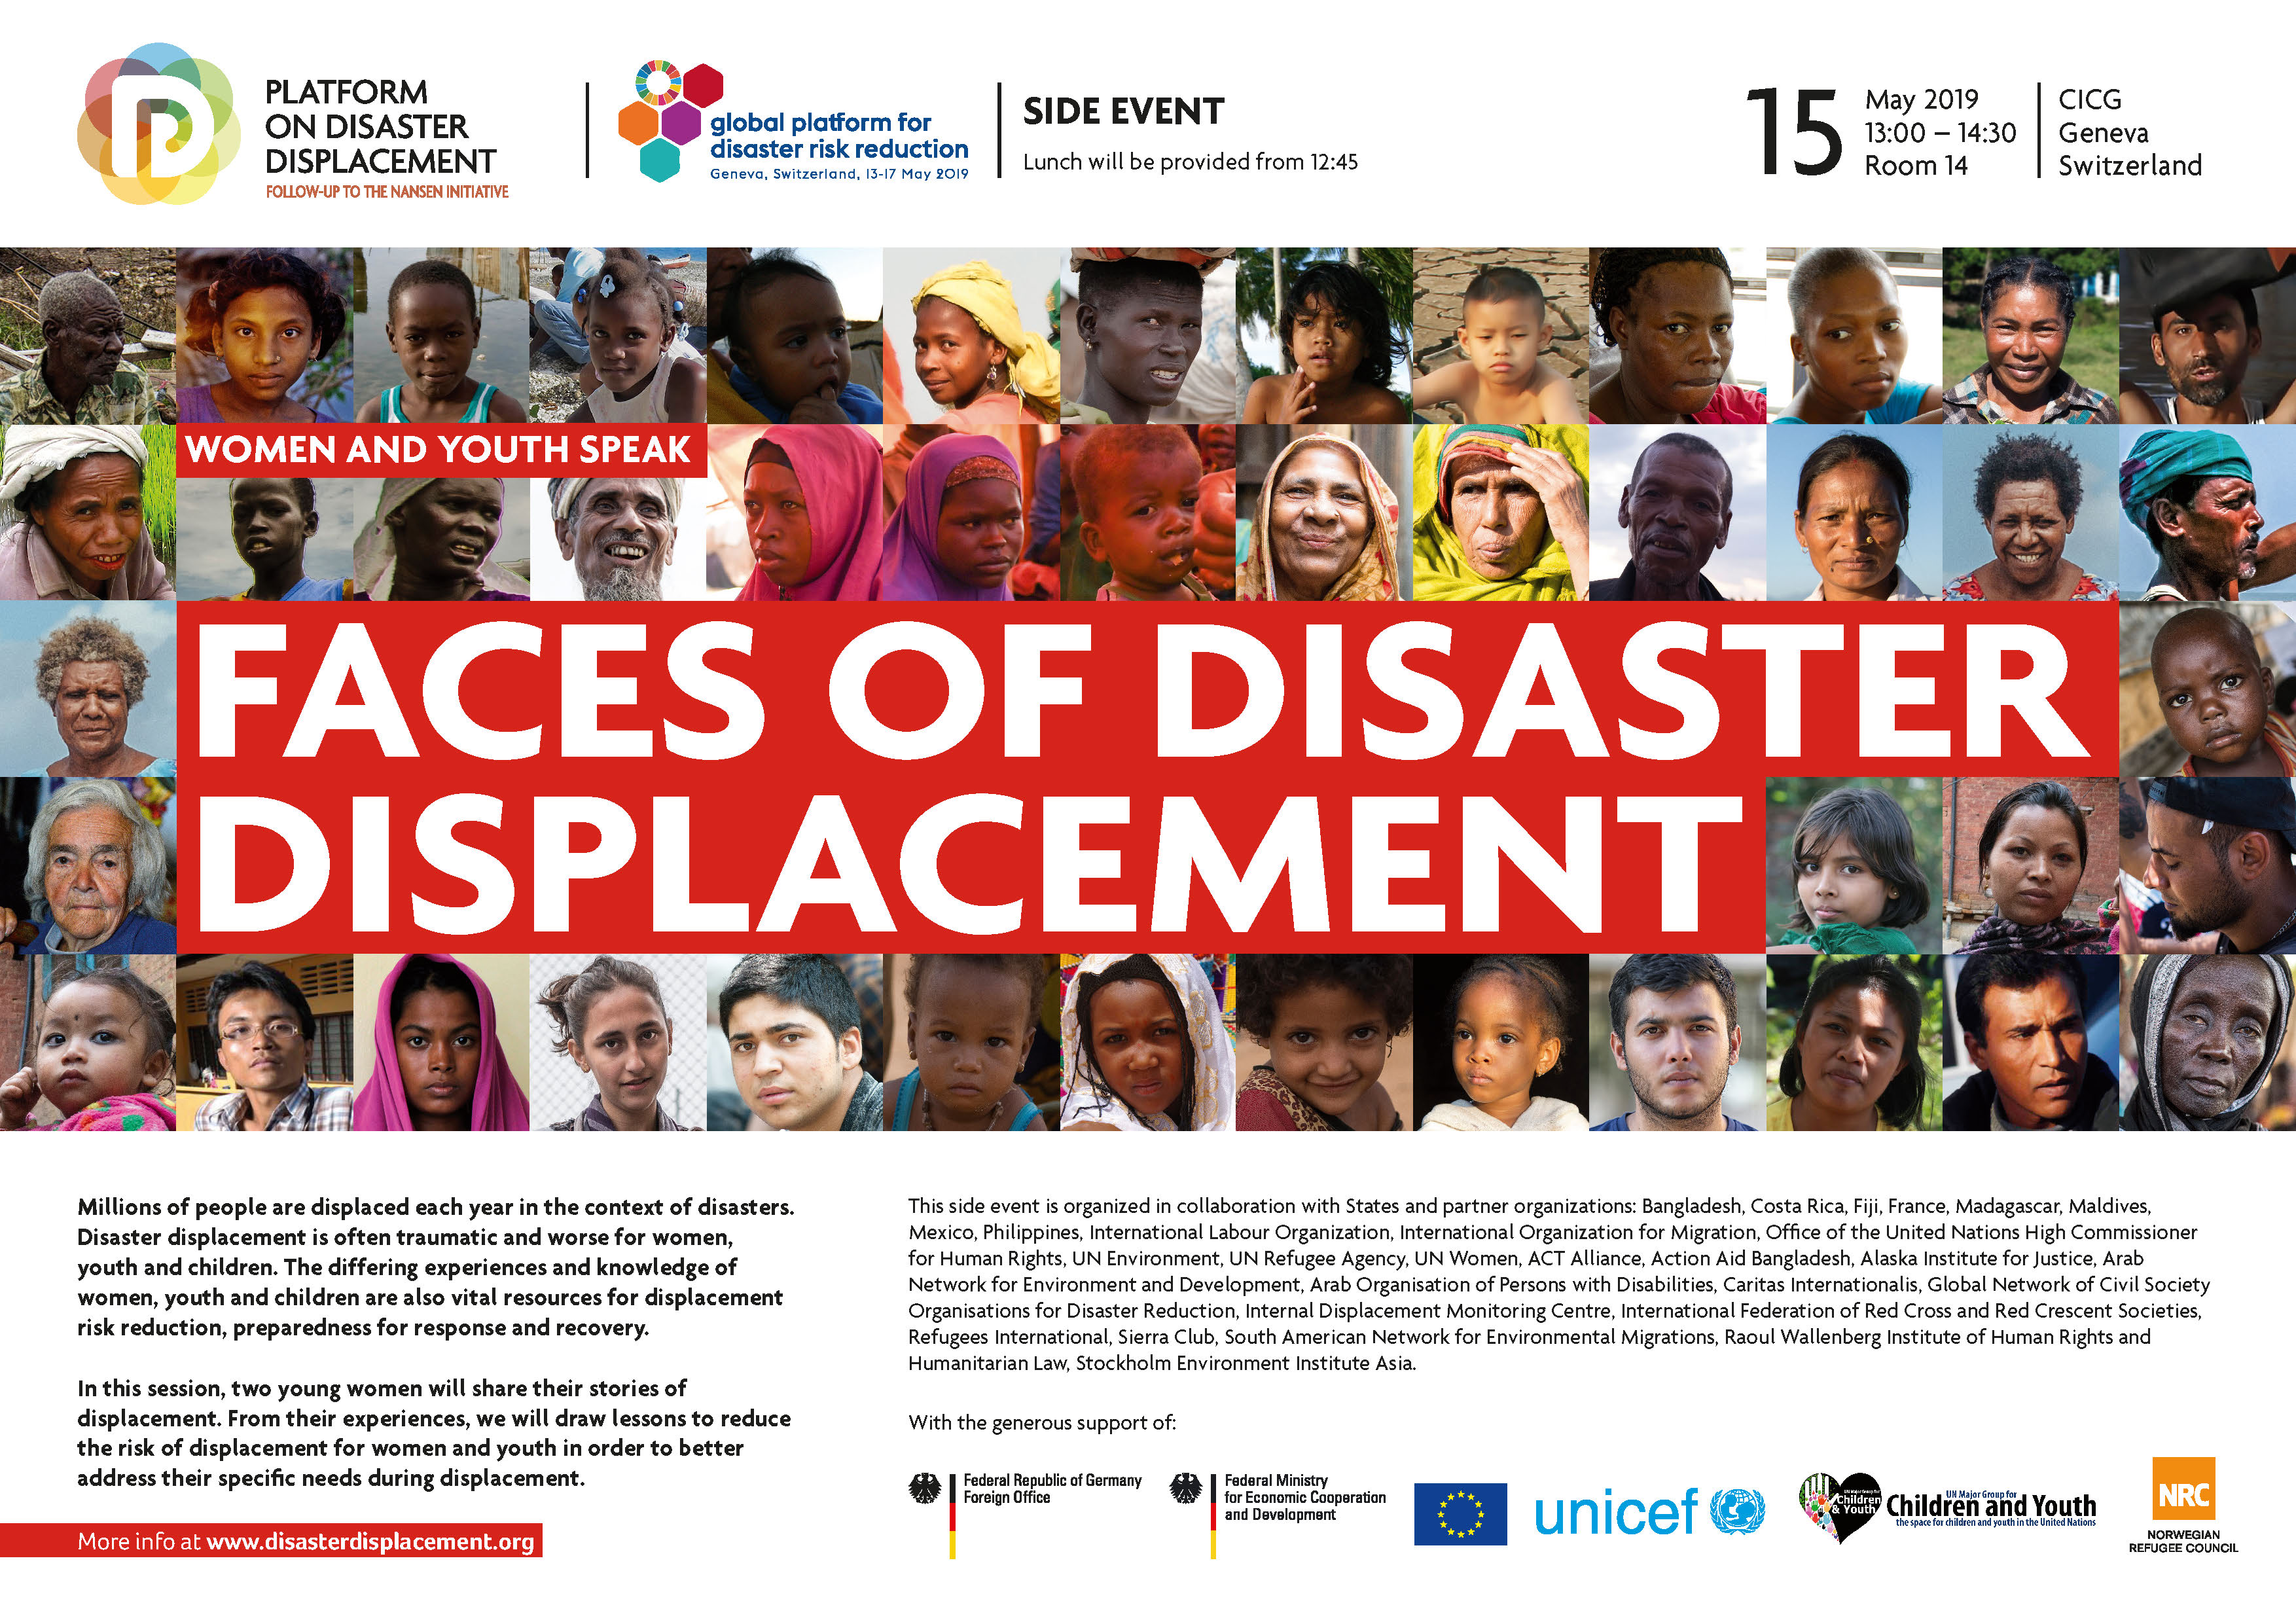 Disaster Displacement At The 2019 Global Platform On Disaster Risk Reduction